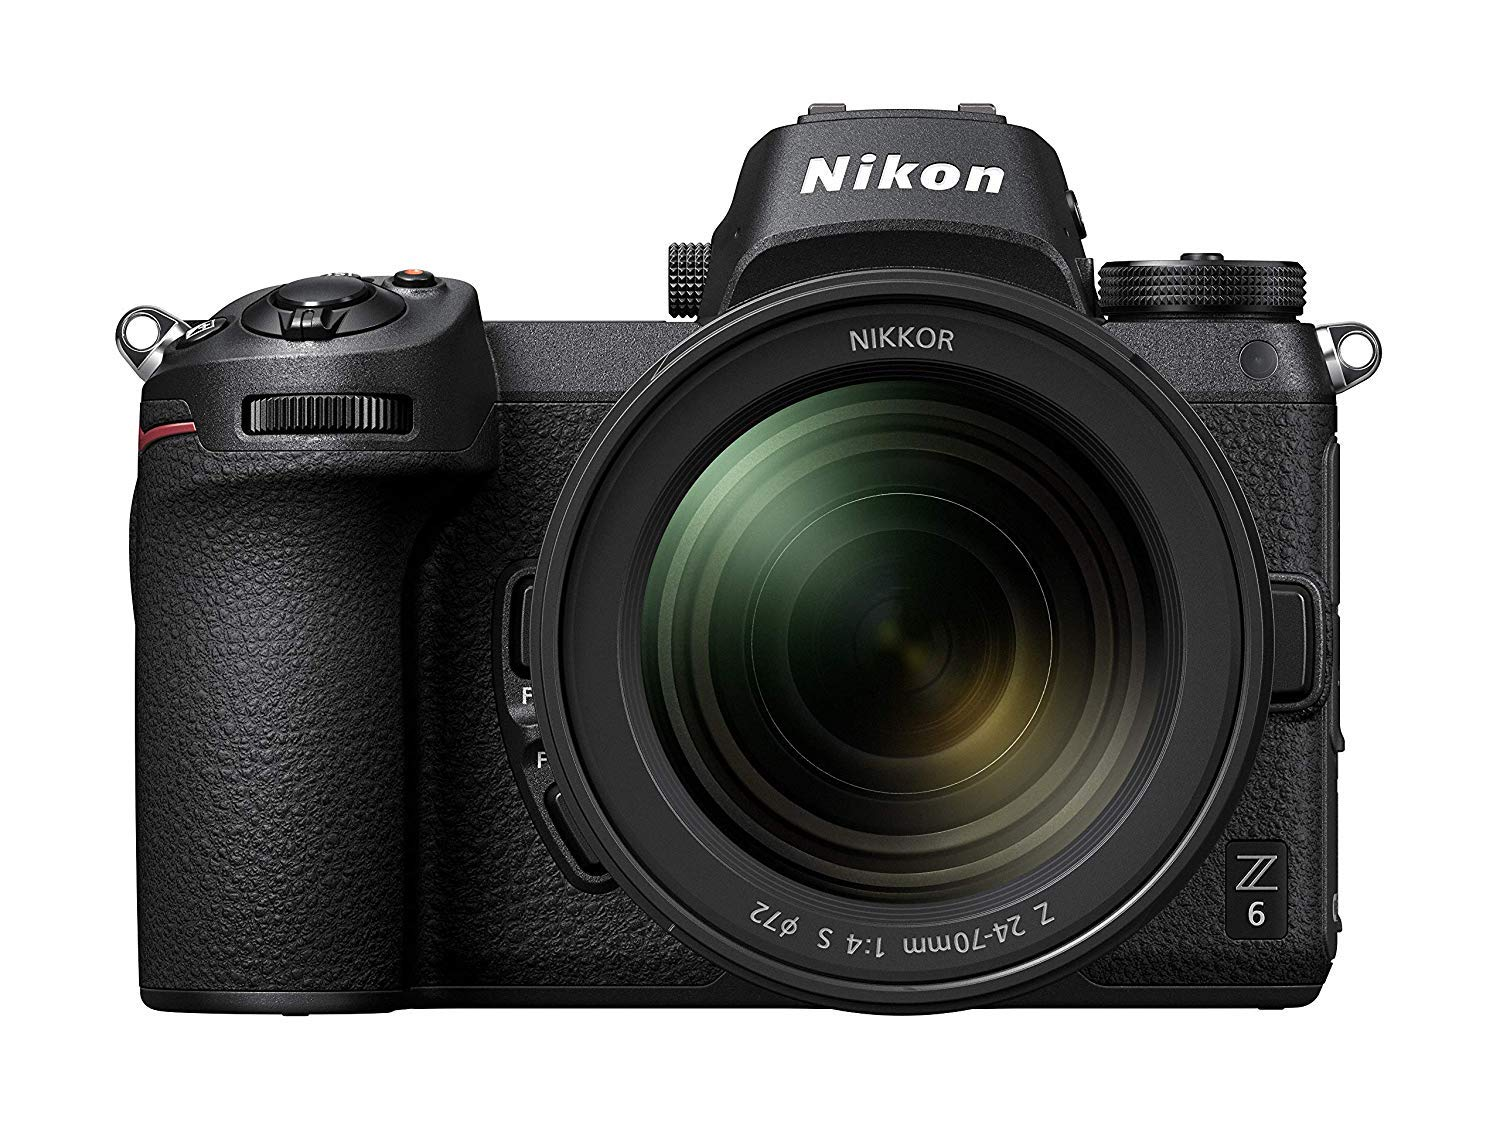 Nikon Z6 FX Format Mirrorless Camera with Nikkor Z 24-70mm f/4 S Lens (Black)